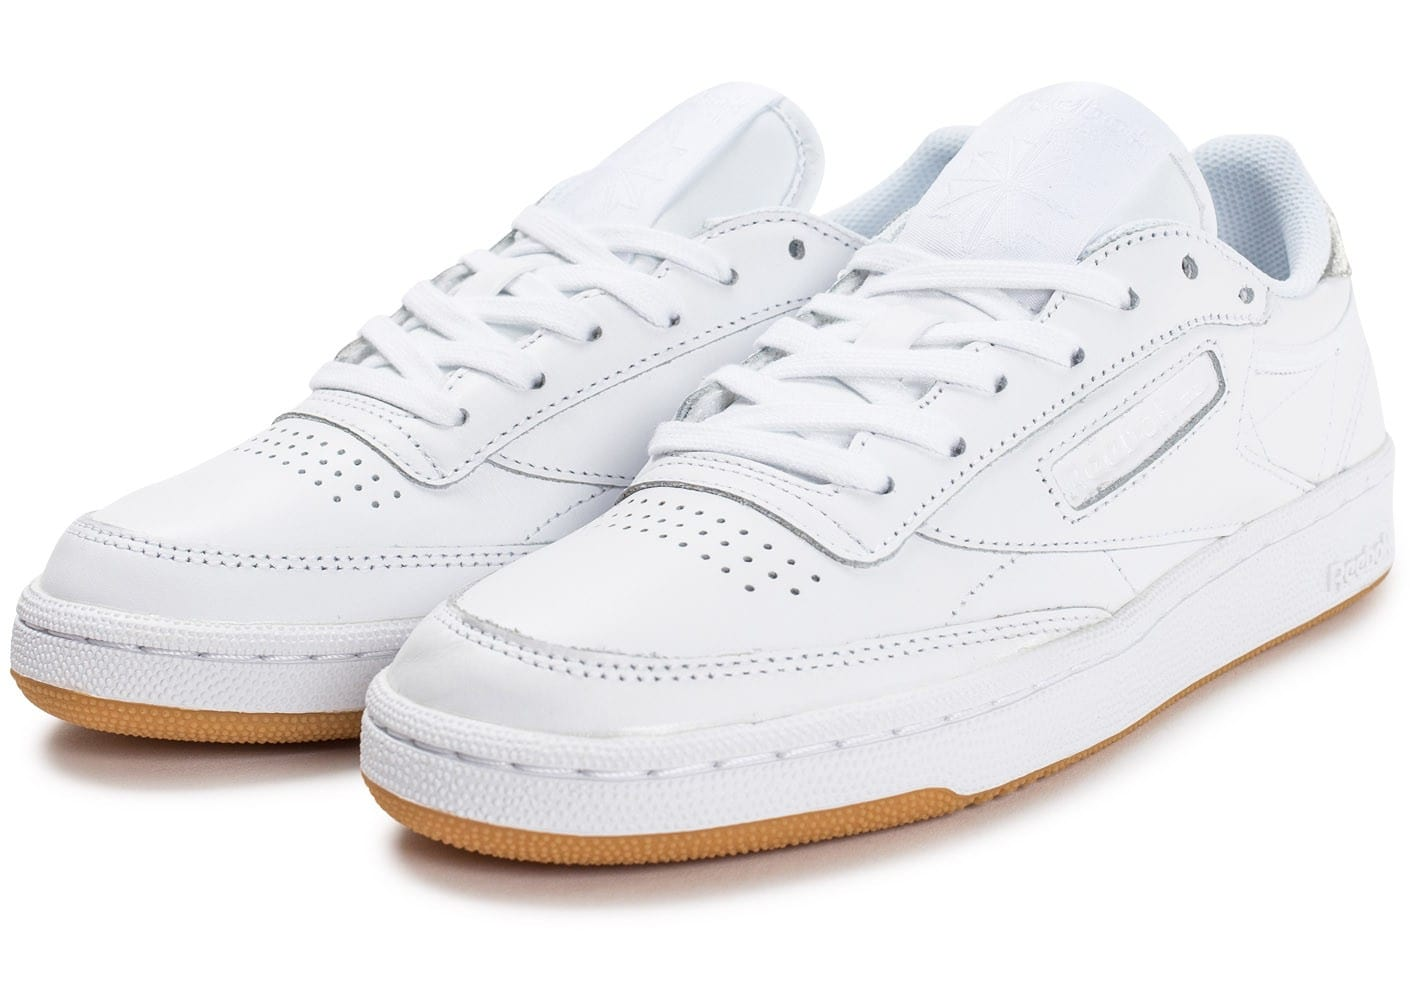 e1db1b3c59b Baskets Mode Reebok Club C85 Blanc k1AUbaKO - groupemms.com